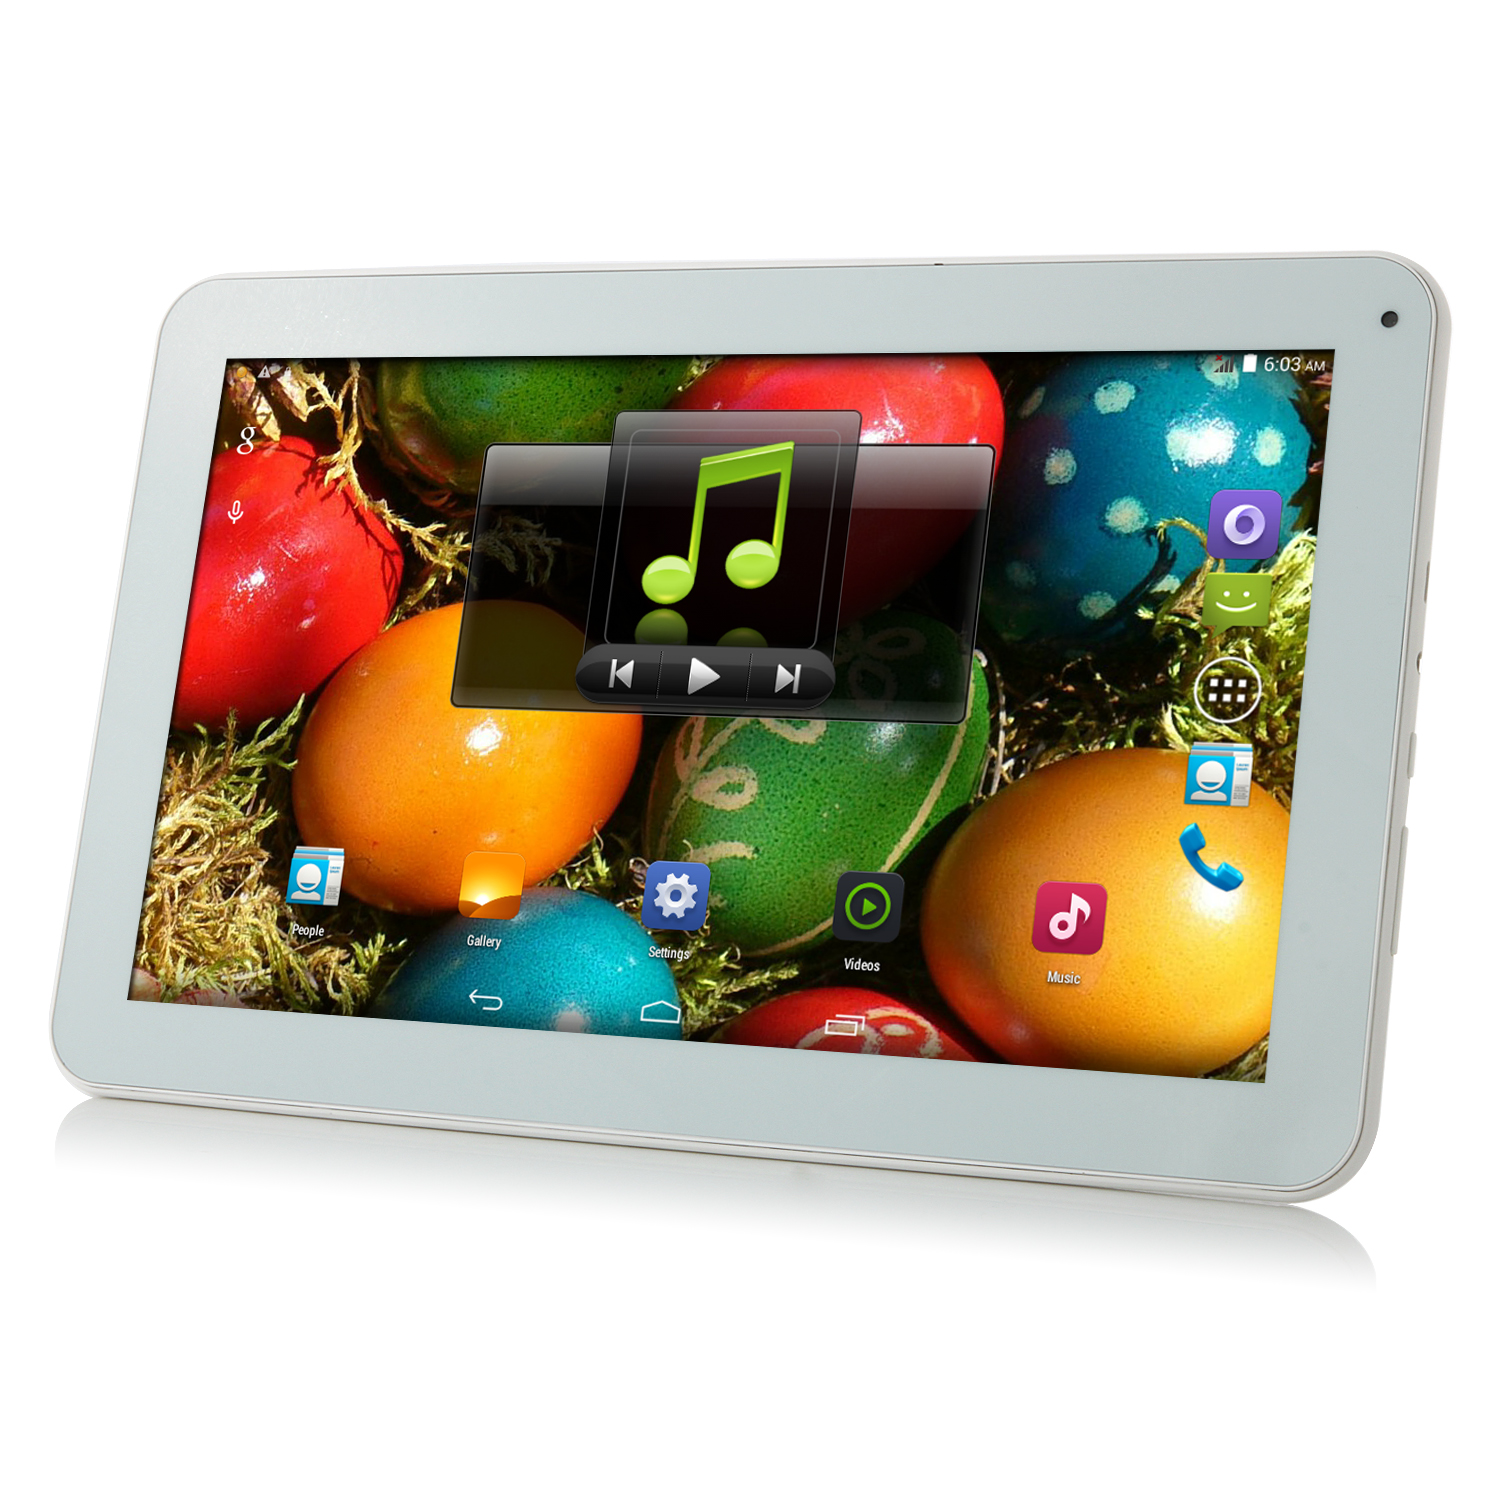 ICOO Q10 Tablet PC MTK8312 Dual Core 10.1 Inch Android 4.4 8GB 3G WCDMA Silver